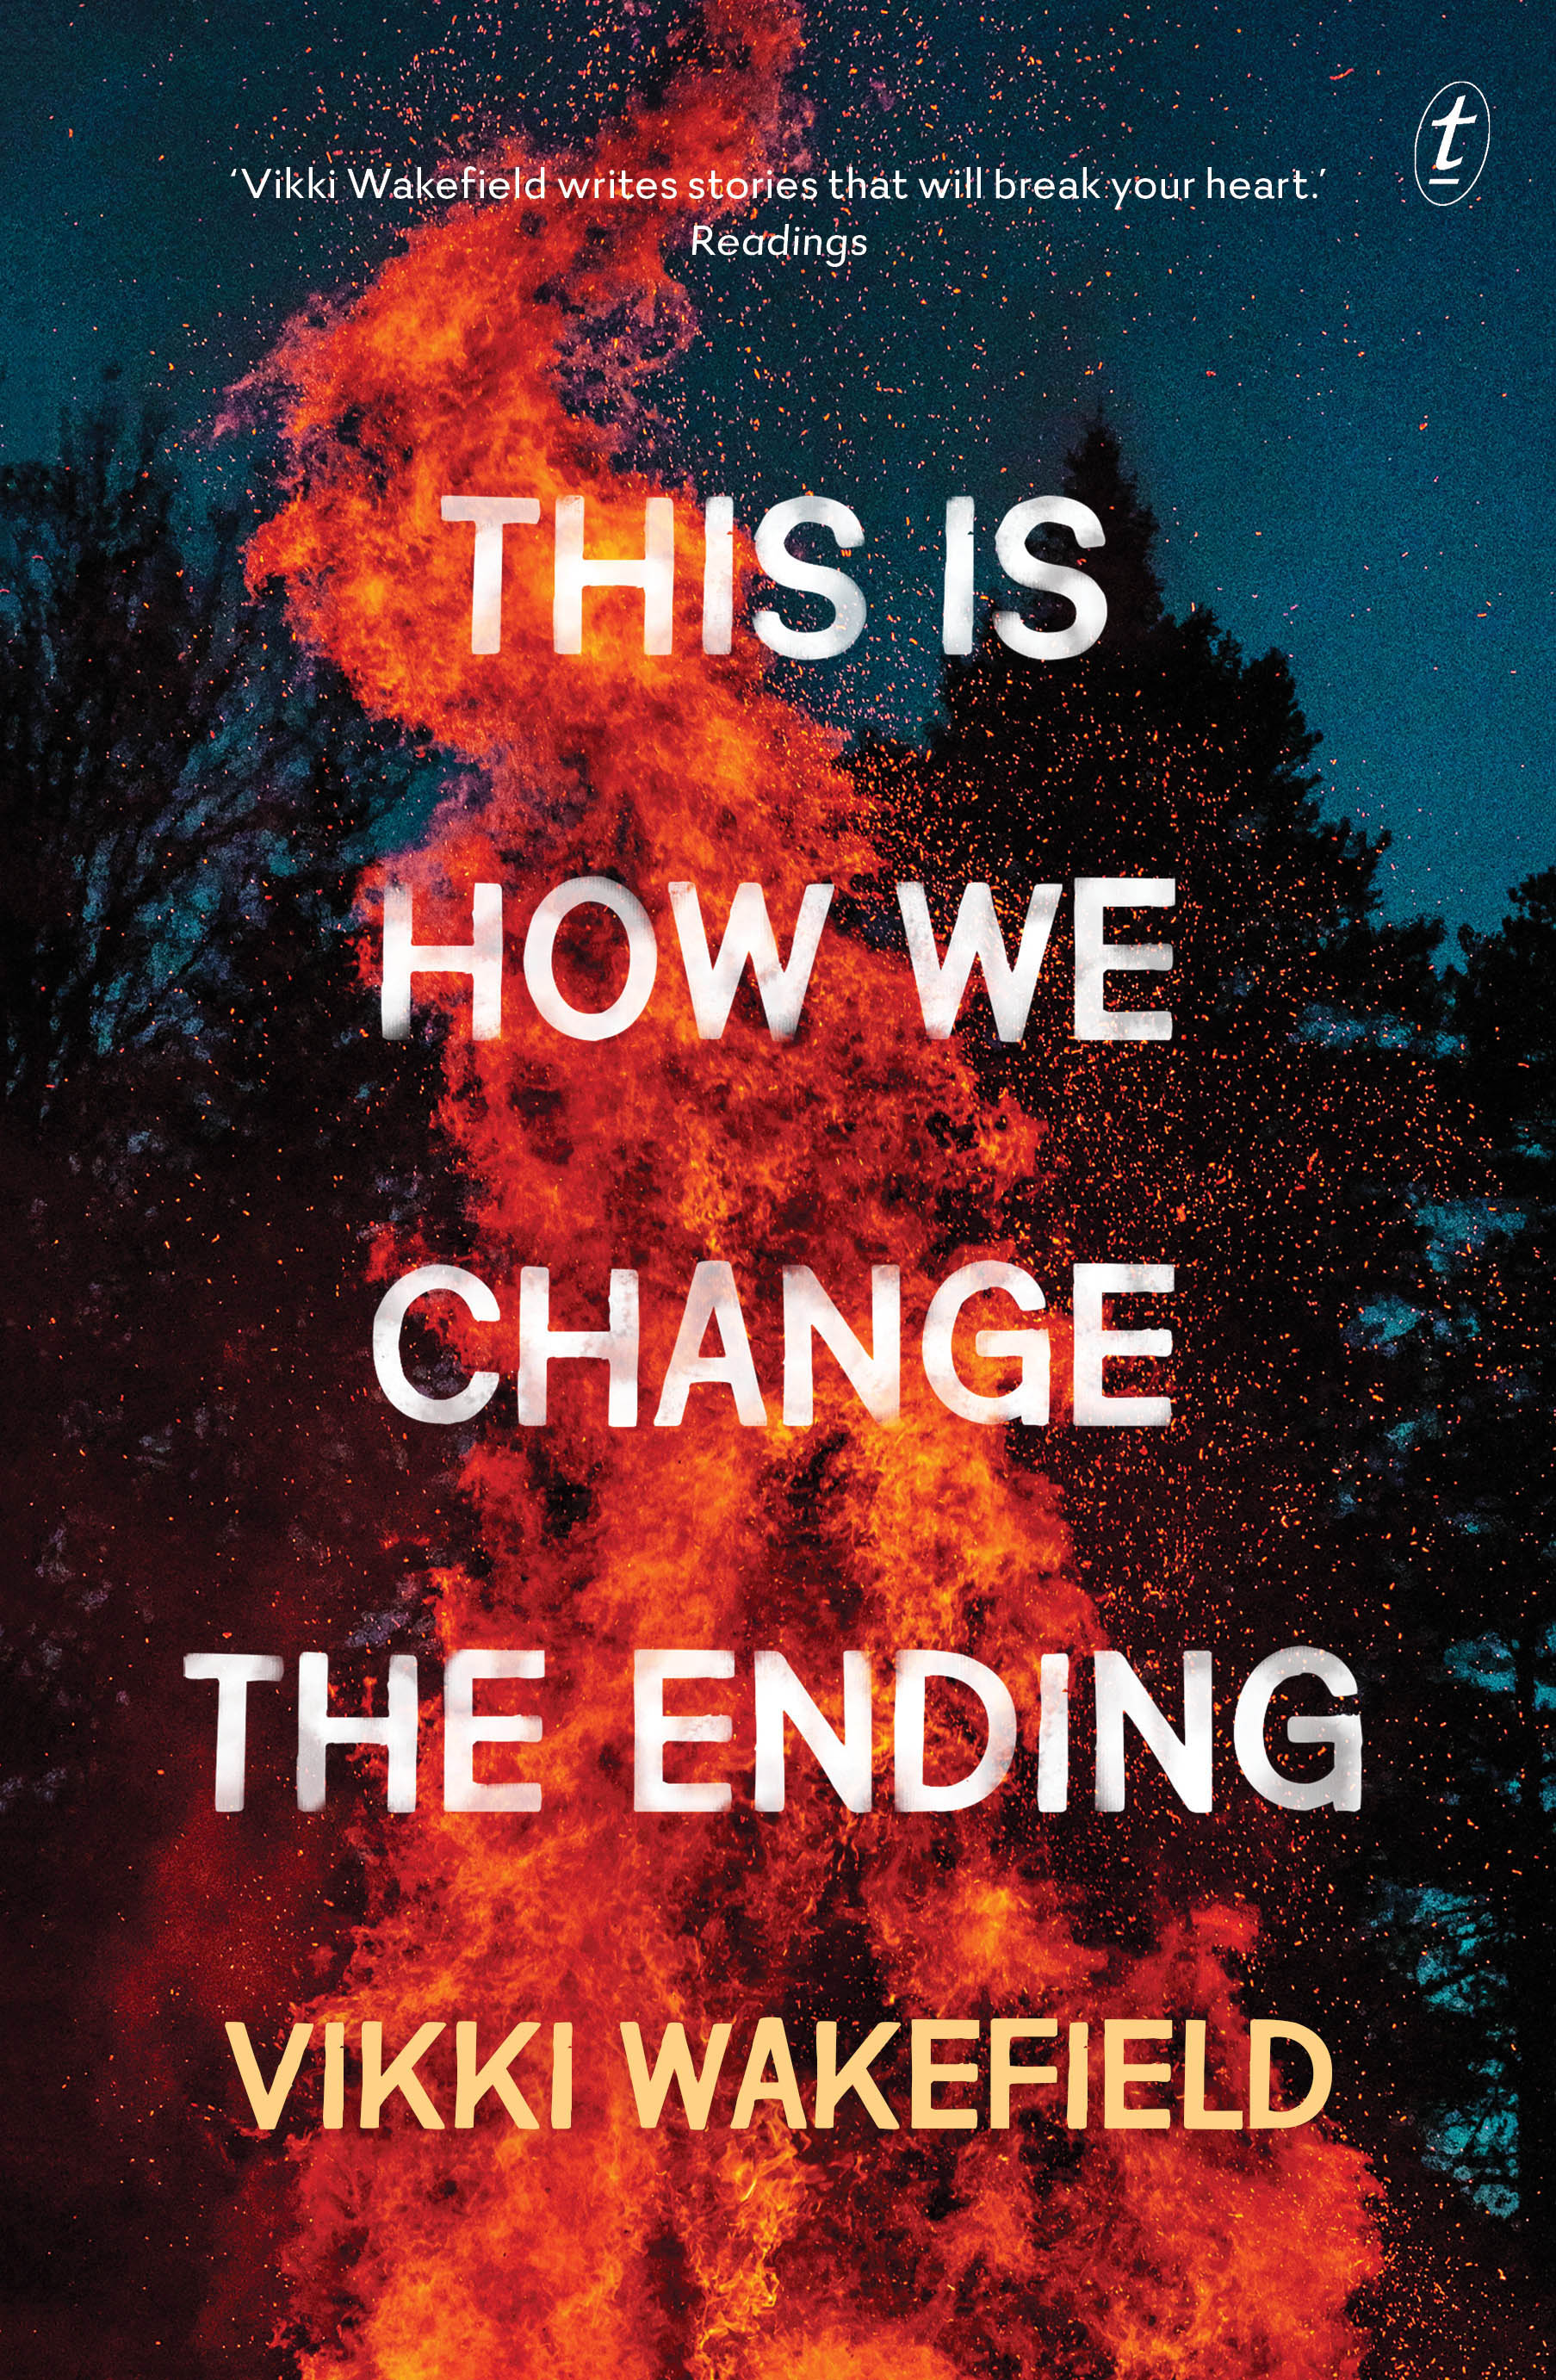 This is how we change the ending, book cover